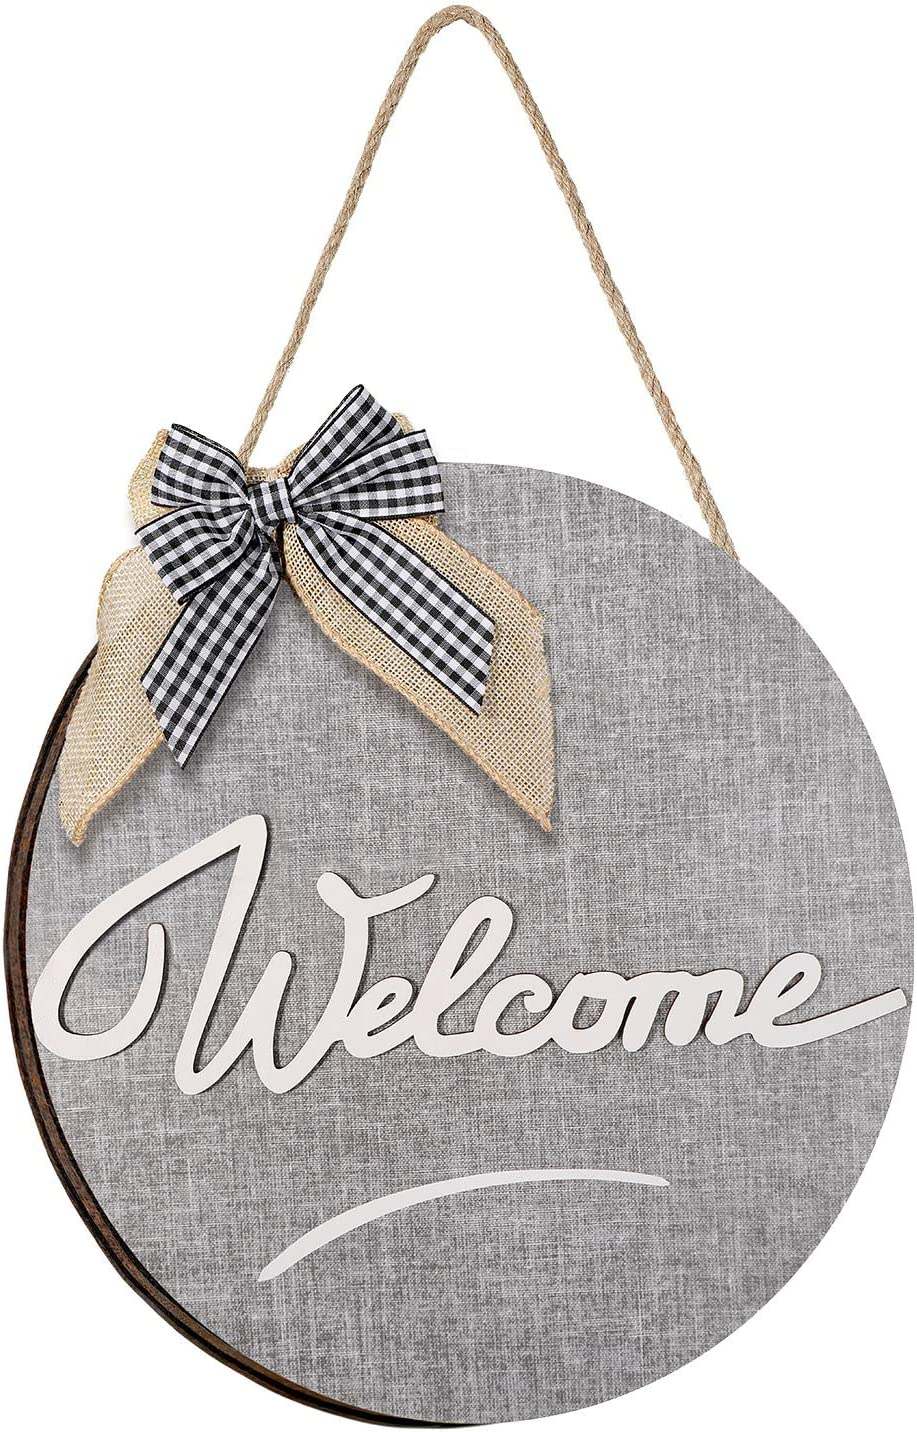 Jetec Welcome Rustic Front Door Decor Welcome Sign Front Door Rustic Wooden Door Hanger Front Porch Decor Welcome Front Door Hanger Hanging Sign for Home Door Farmhouse